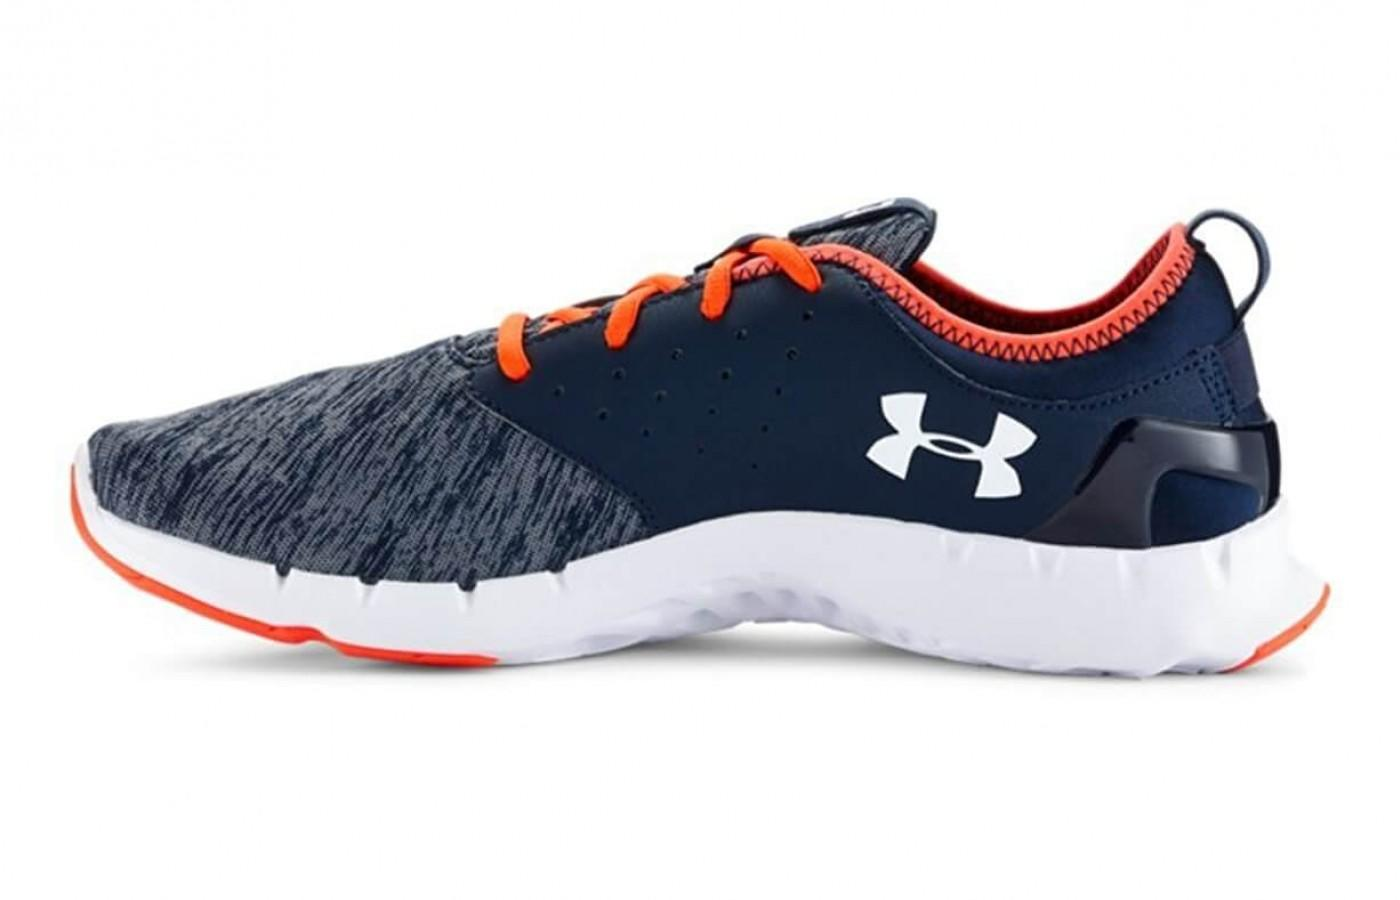 the Under Armour Flow Twist is a stylish trainer